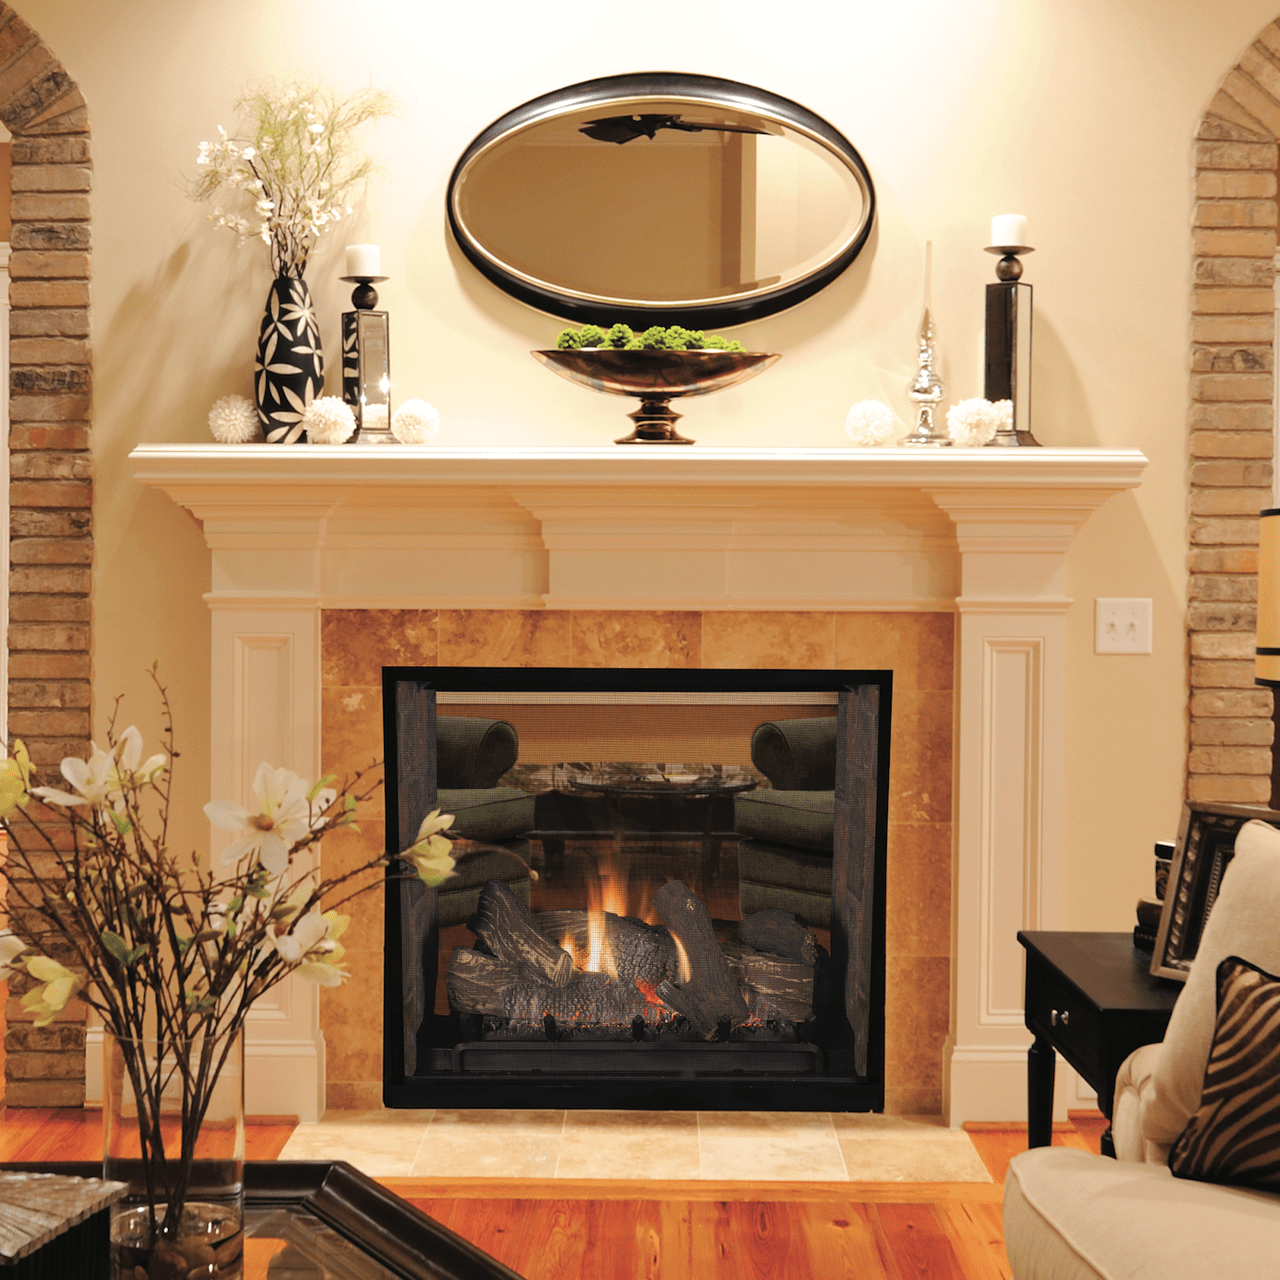 Gas Fireplace Store Buy Gas Fireplaces Online With Confidence Thanks To Embers Living